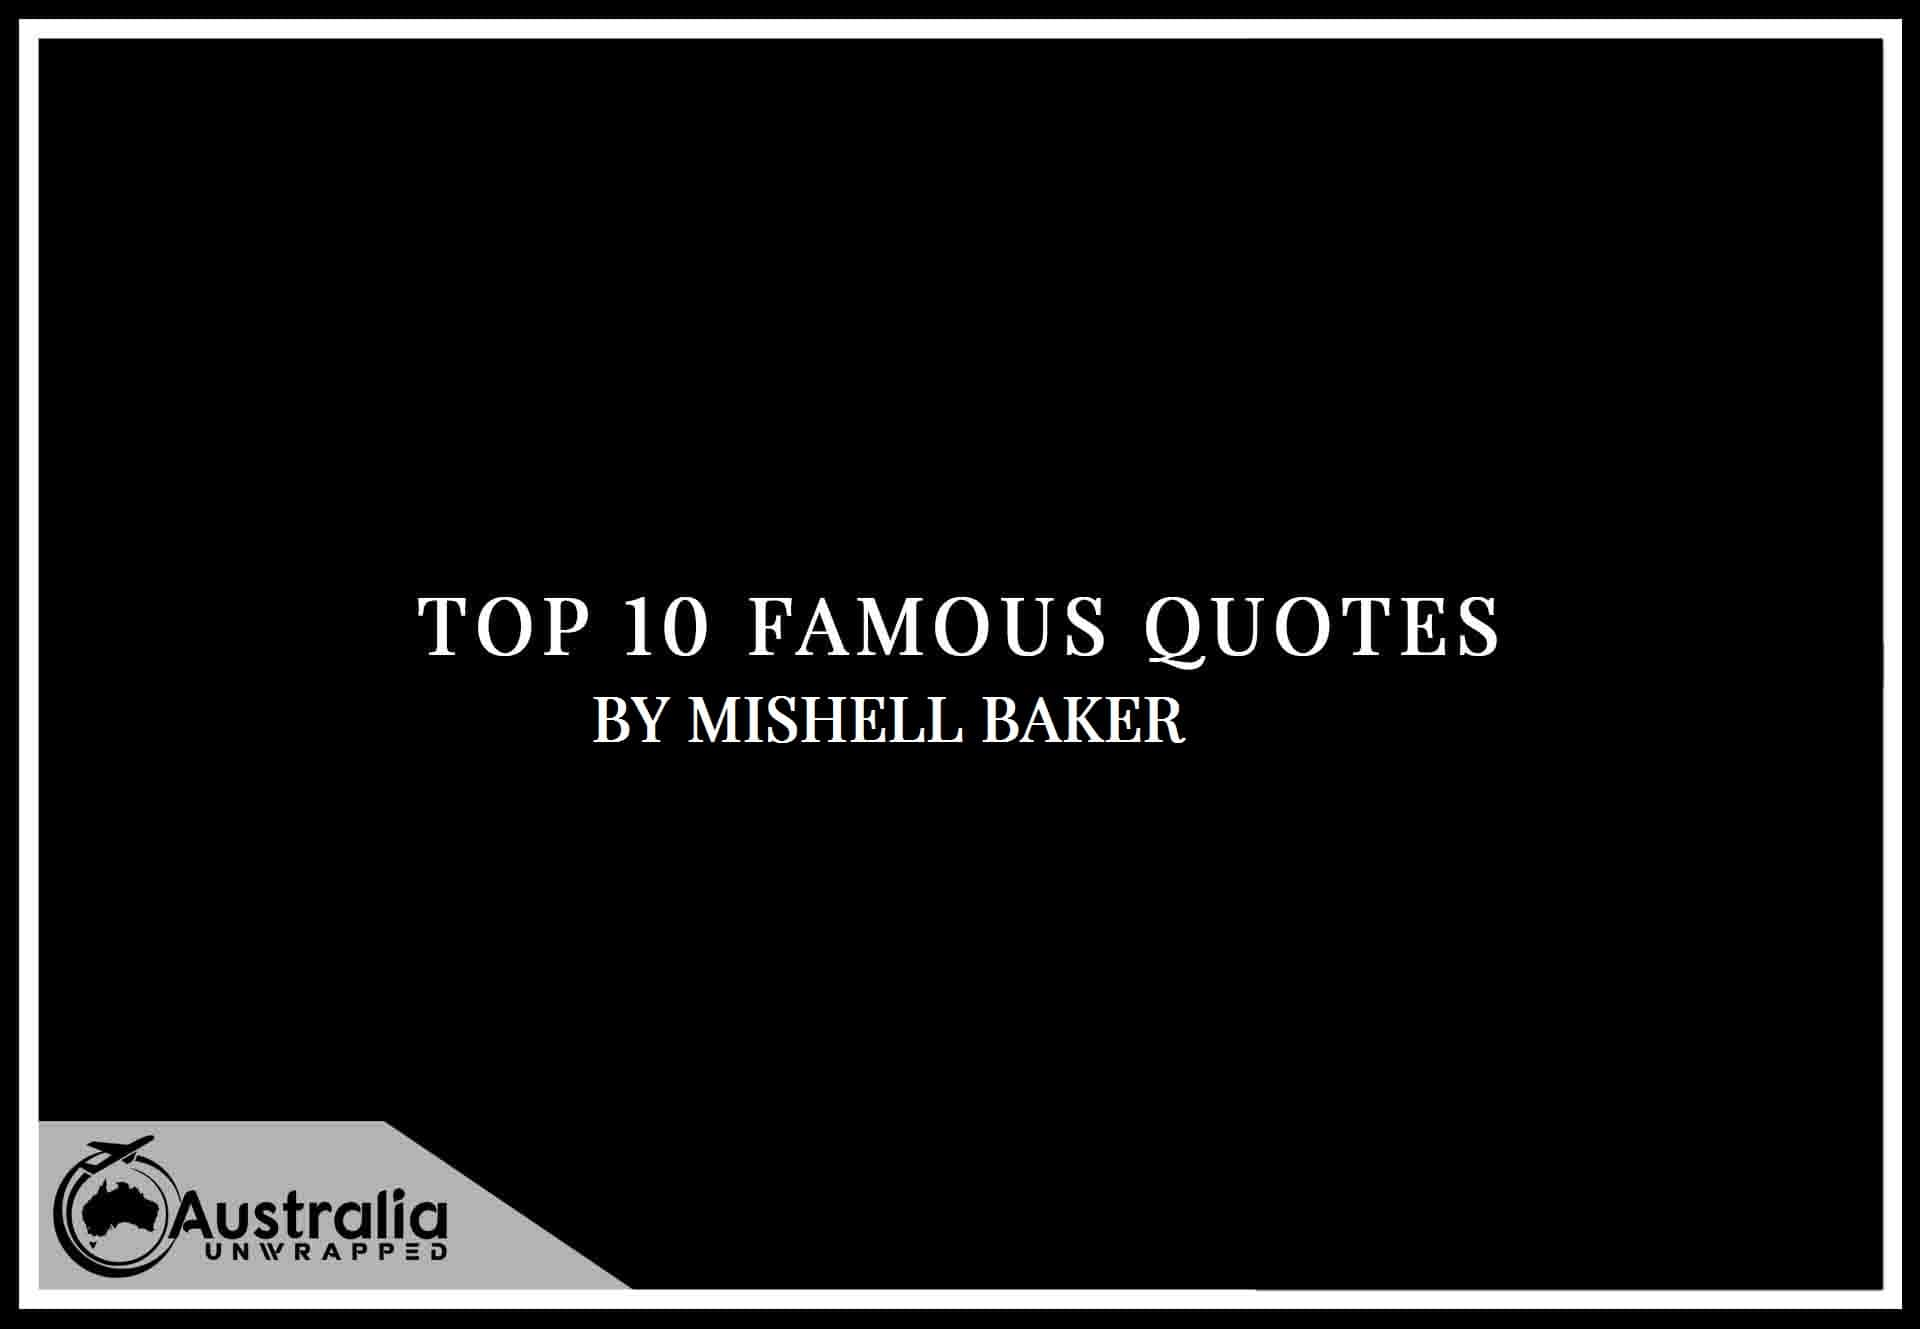 Mishell Baker's Top 10 Popular and Famous Quotes